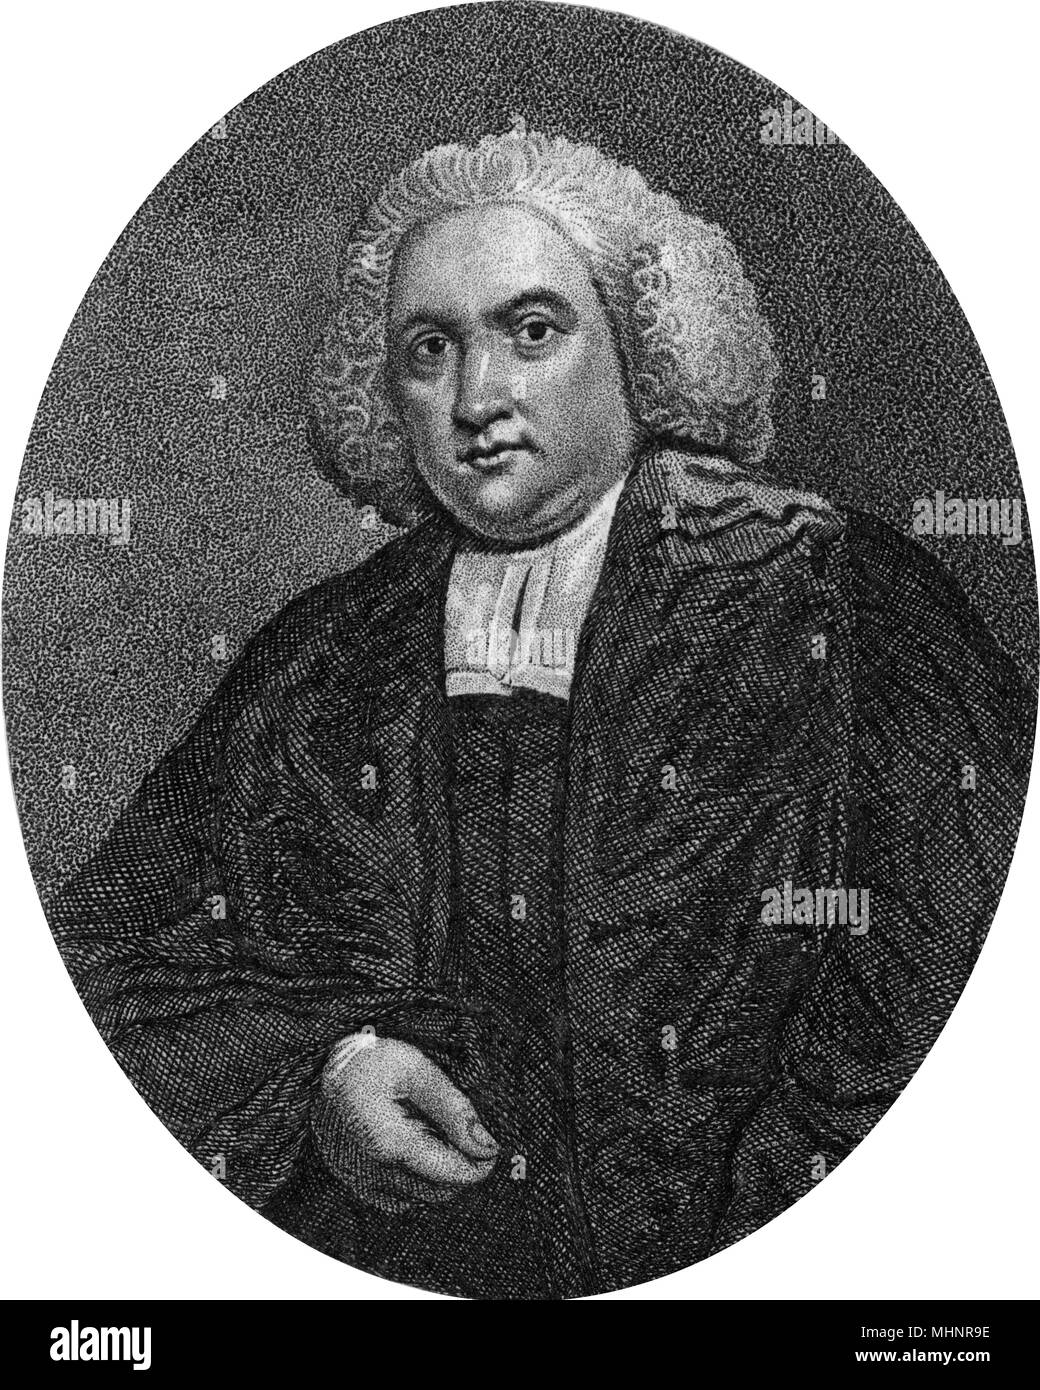 Doctor Joseph Warton (1722-1800) - English academic and literary critic.  Date: circa 1780s